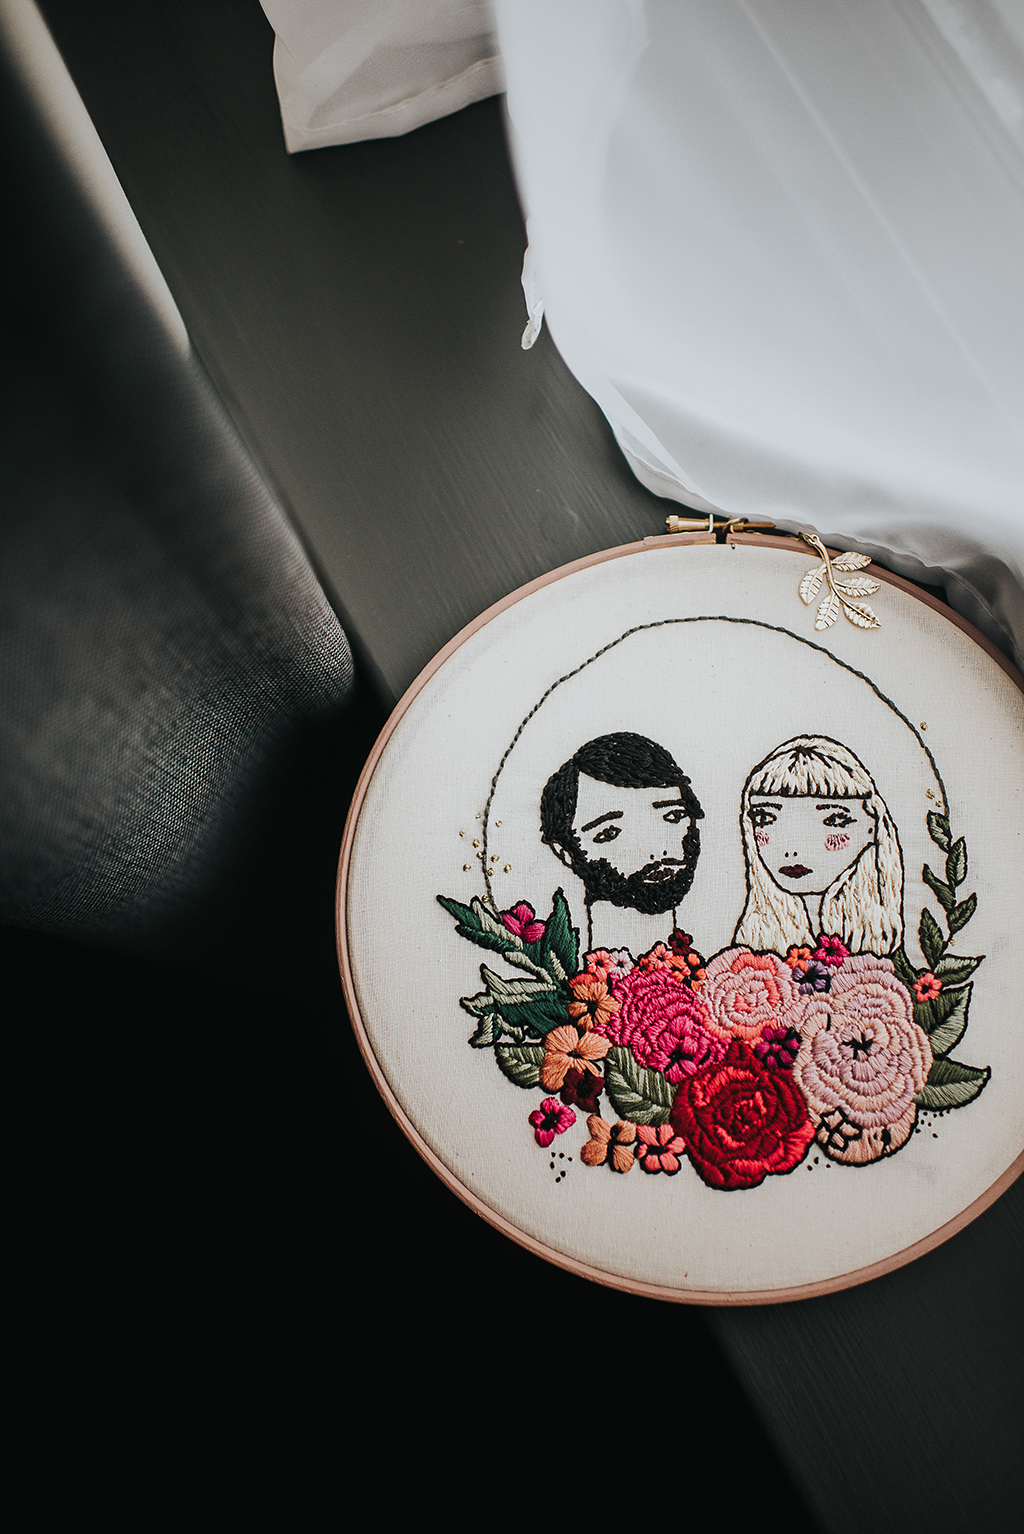 The couple's portrait was the inspiration for the wedding and it was used throughout the venue for decor